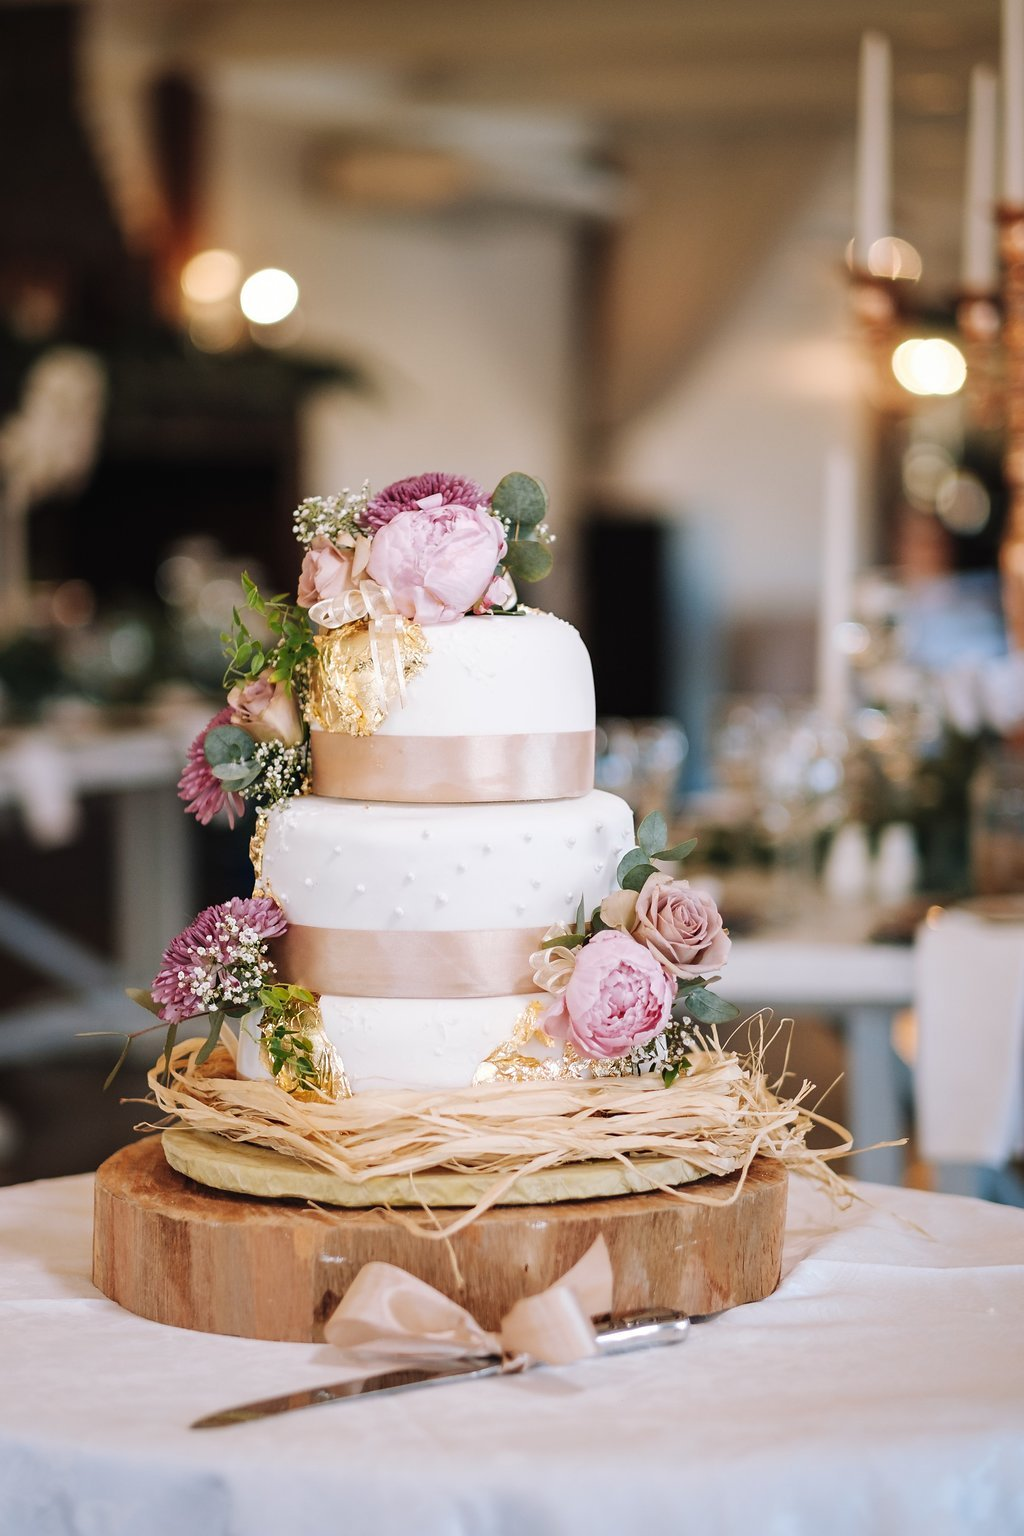 Country Vintage Wedding Cake | Image: The Shank Tank